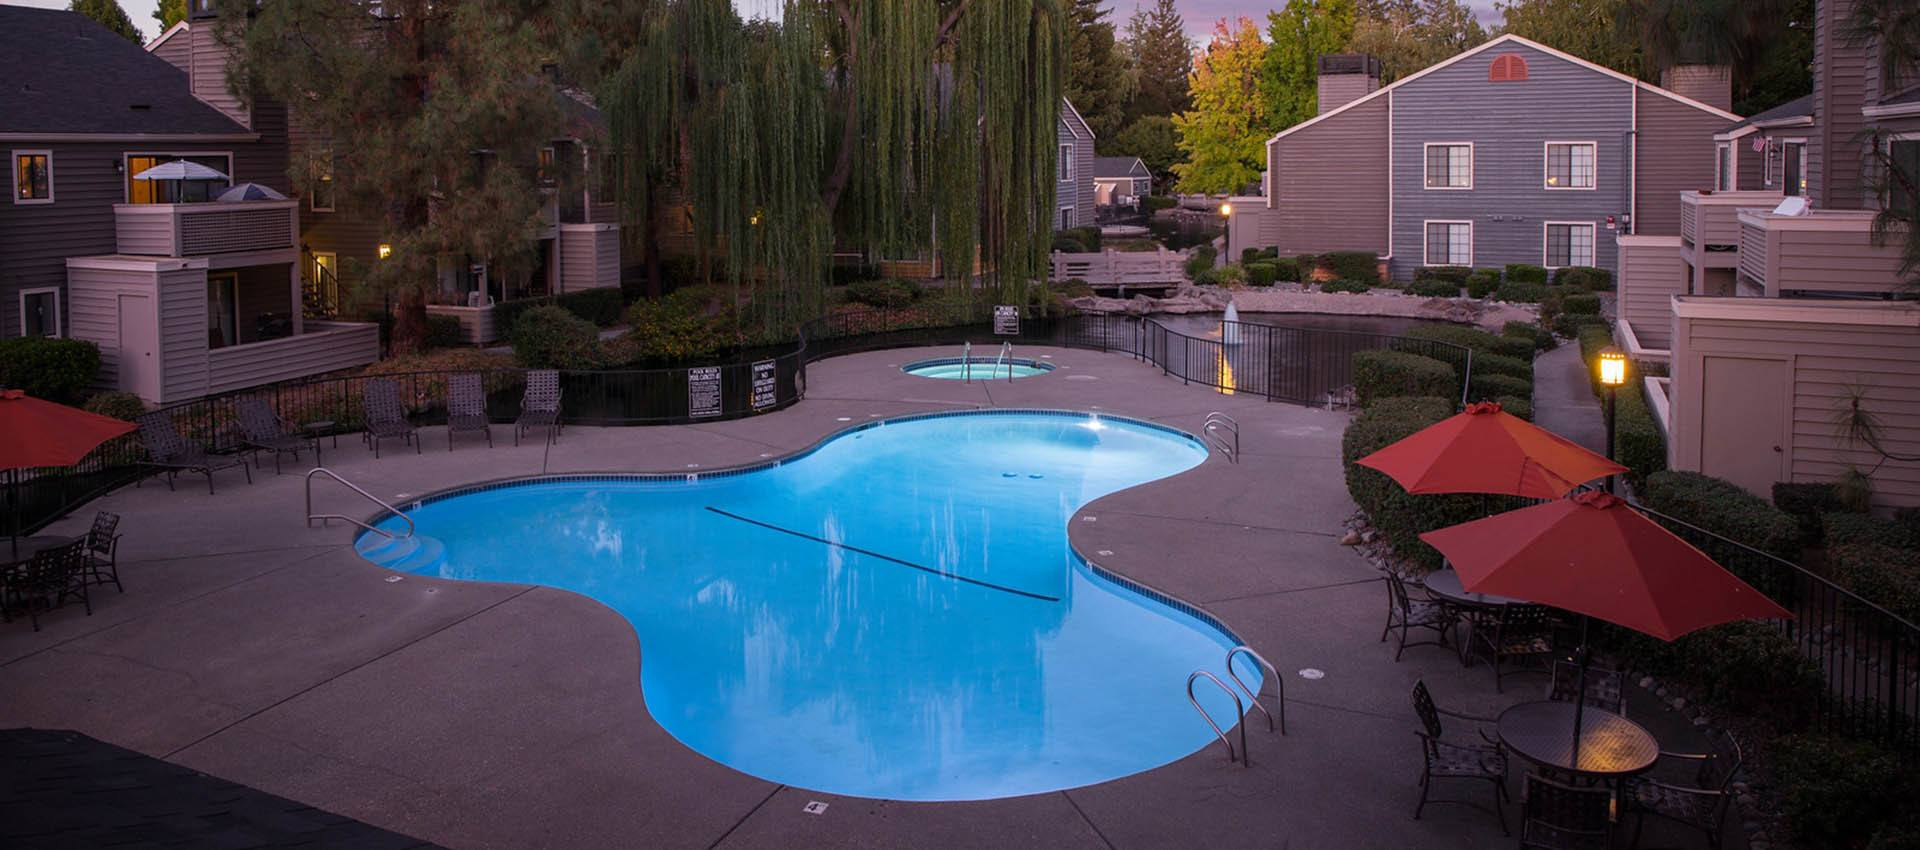 Resort Style Swimming Pool at Hidden Lake Condominium Rentals in Sacramento, CA